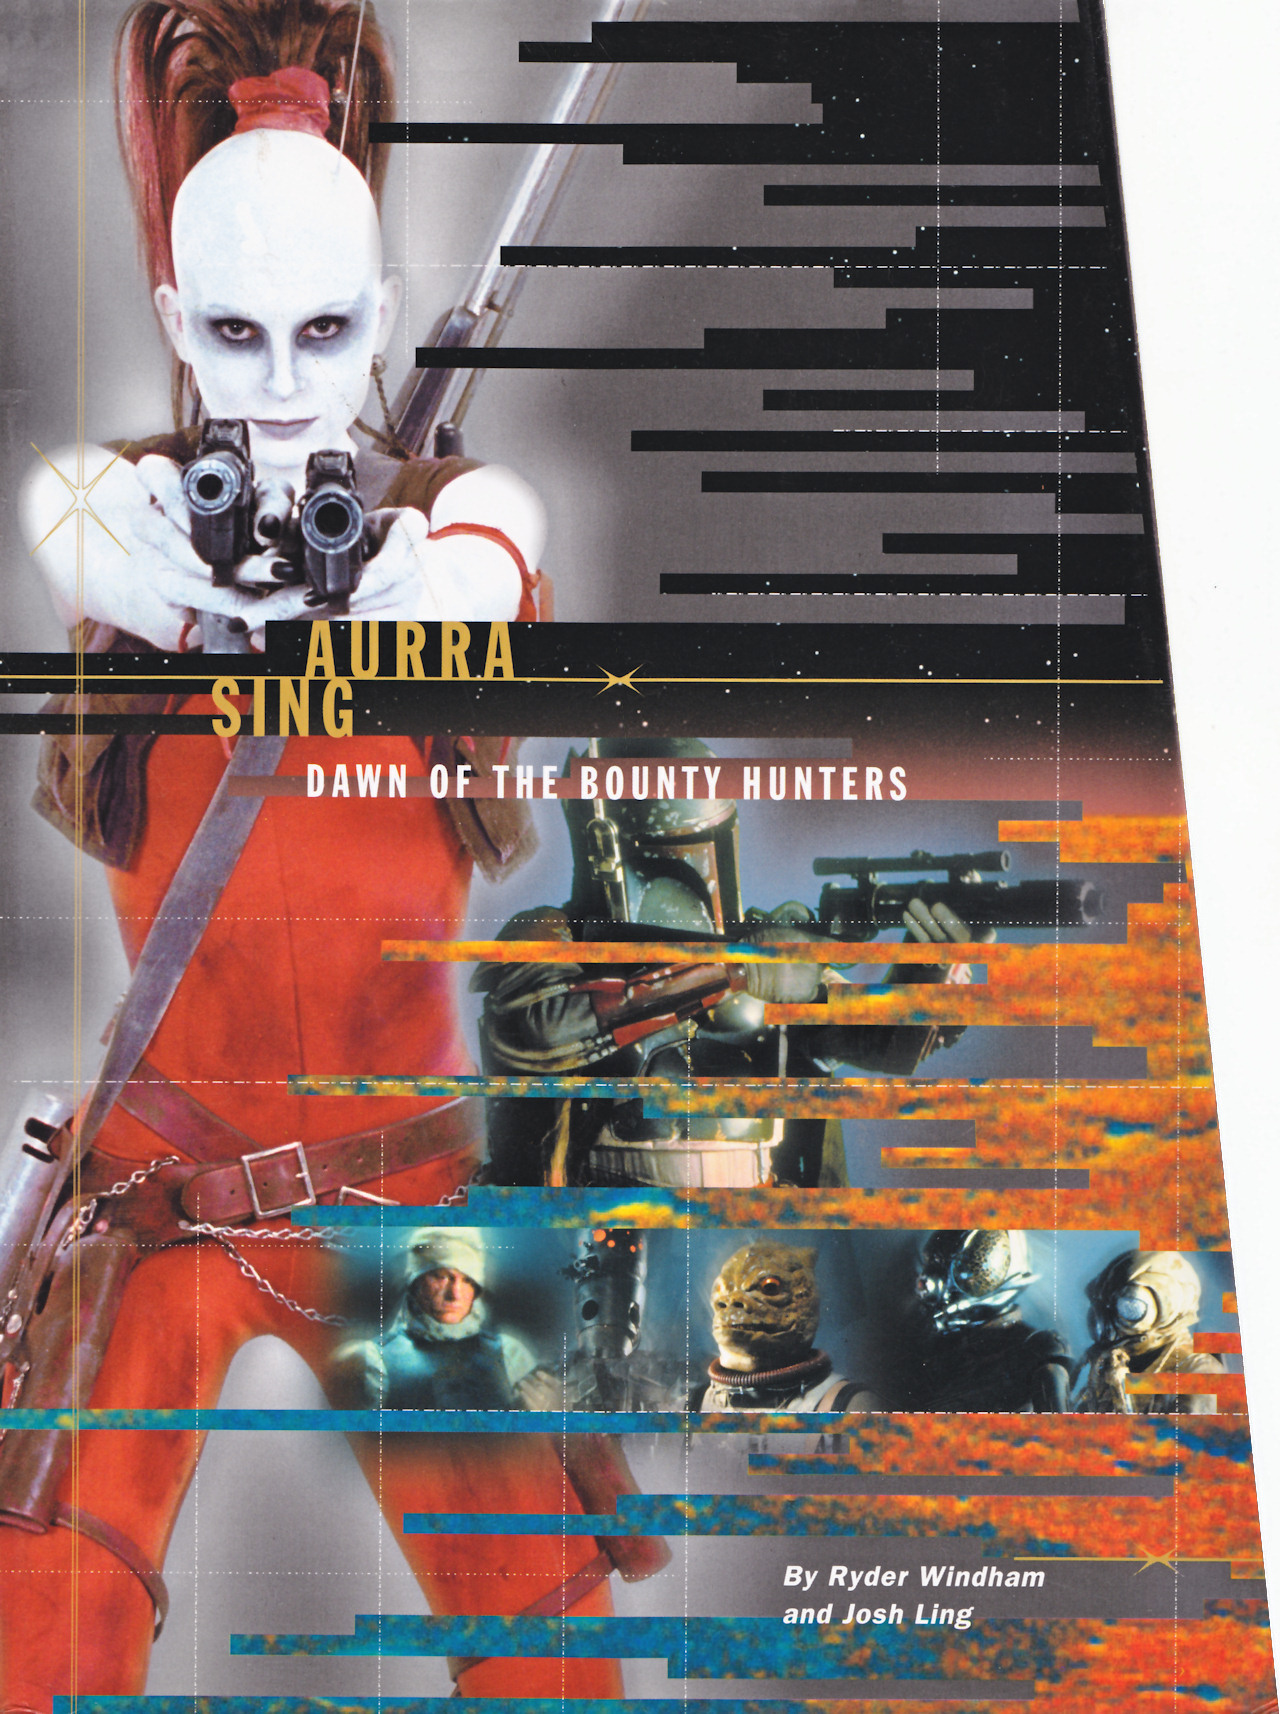 Star Wars Aurra Sing: Dawn of the Bounty Hunters